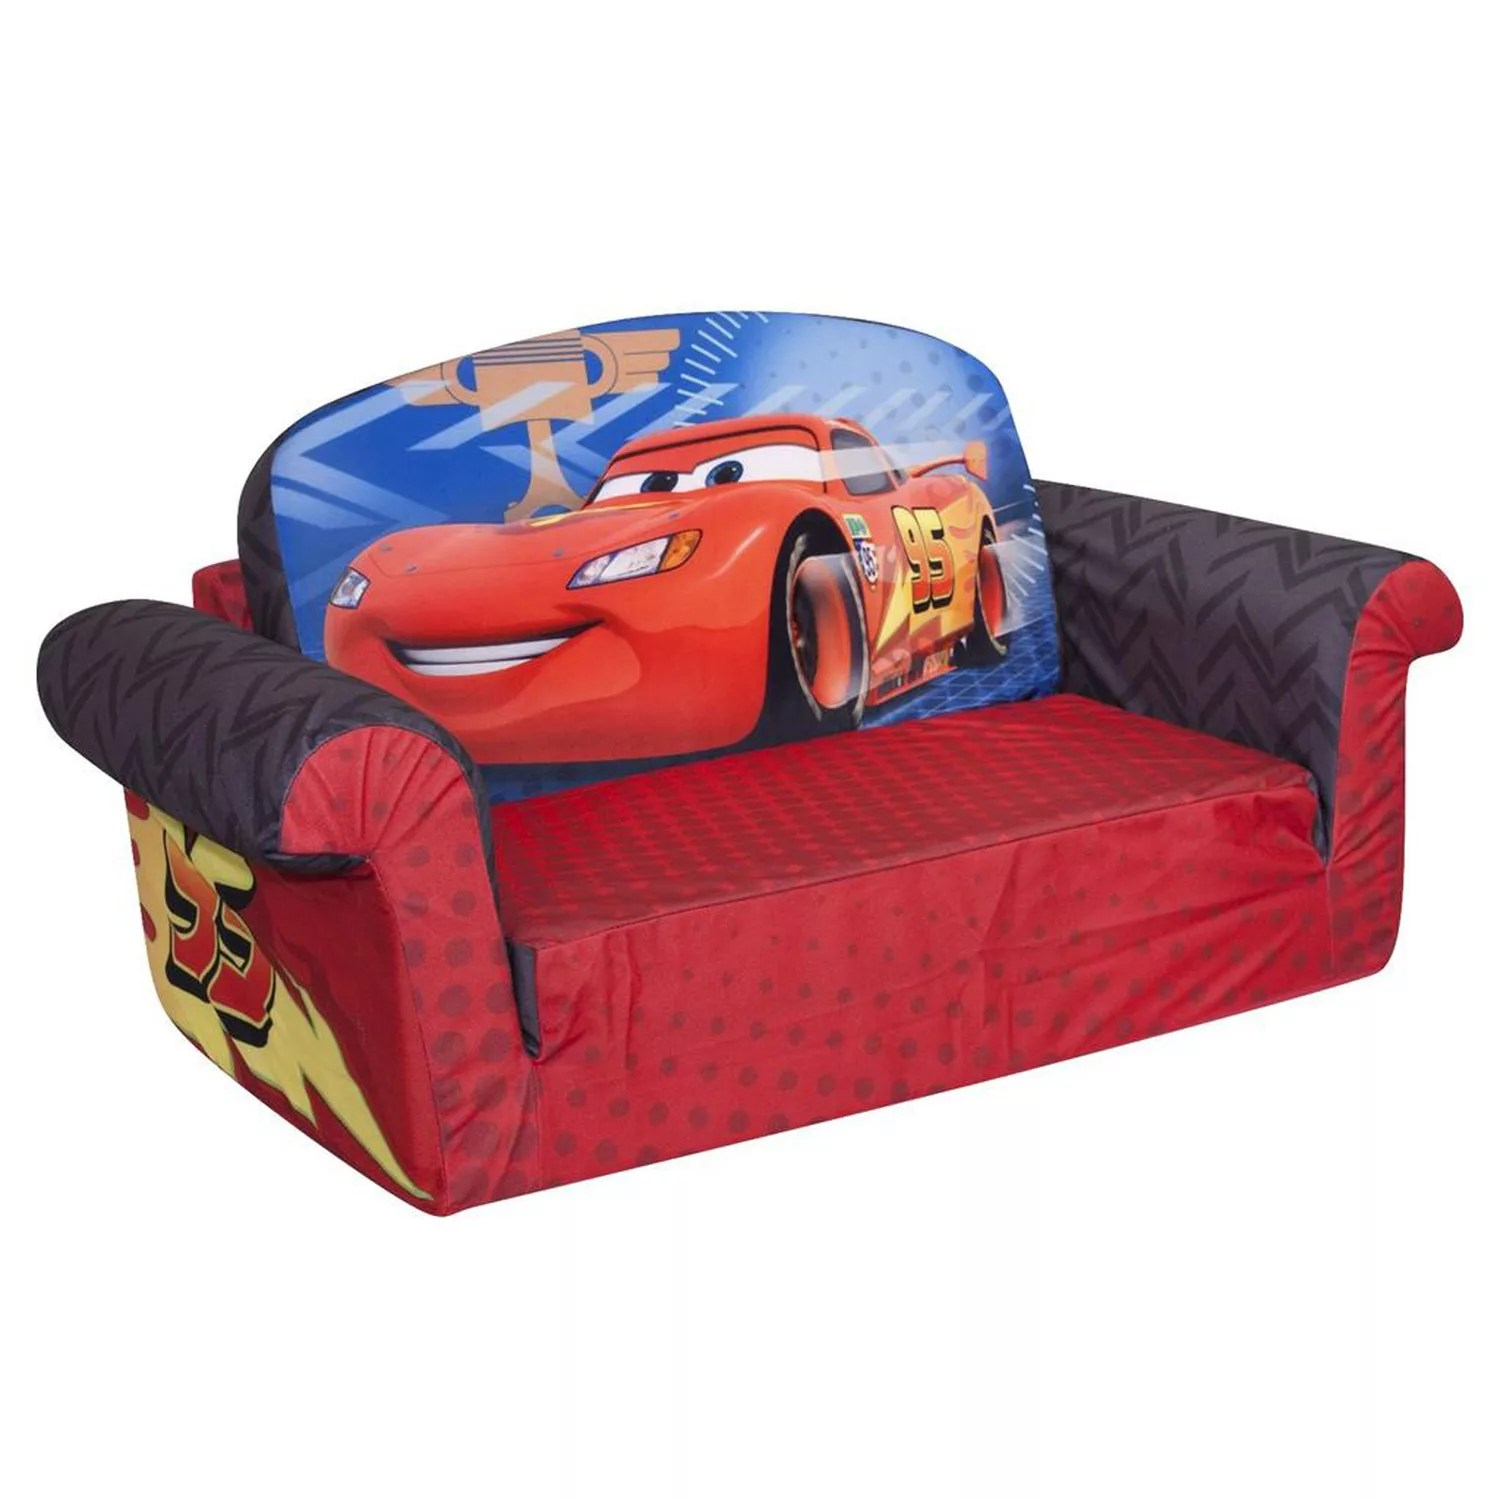 disney flip open sofa bed fabric malaysia supplier pixar cars marshmallow 2 in 1 kids by spin master